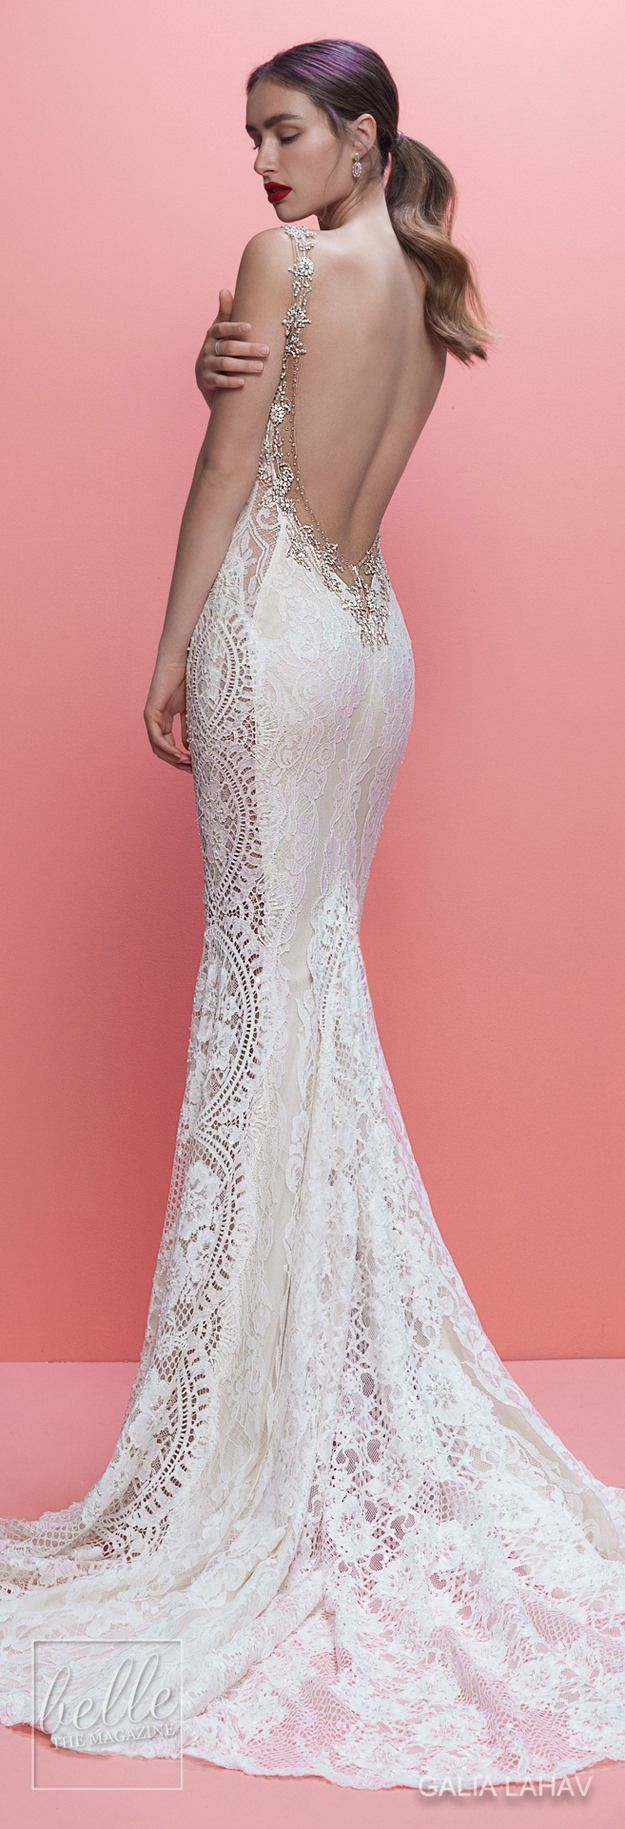 Wedding Dresses By Galia Lahav Couture Bridal Spring 2019 Collection ...